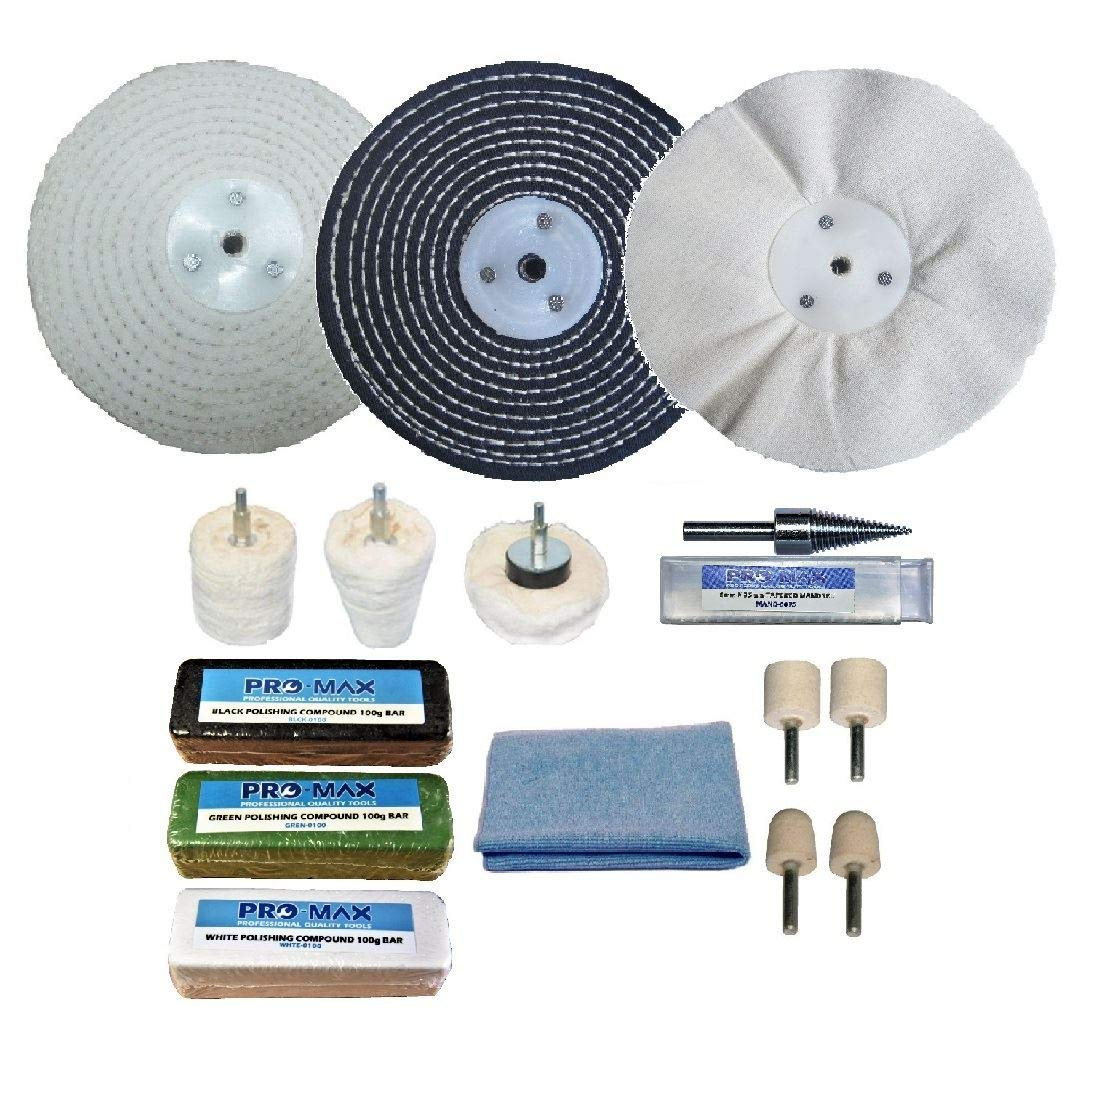 Steel & Stainless Steel Professional Metal Polishing Buffing Kit 6' x 1' Pro-Max Quality Tools & Accessories